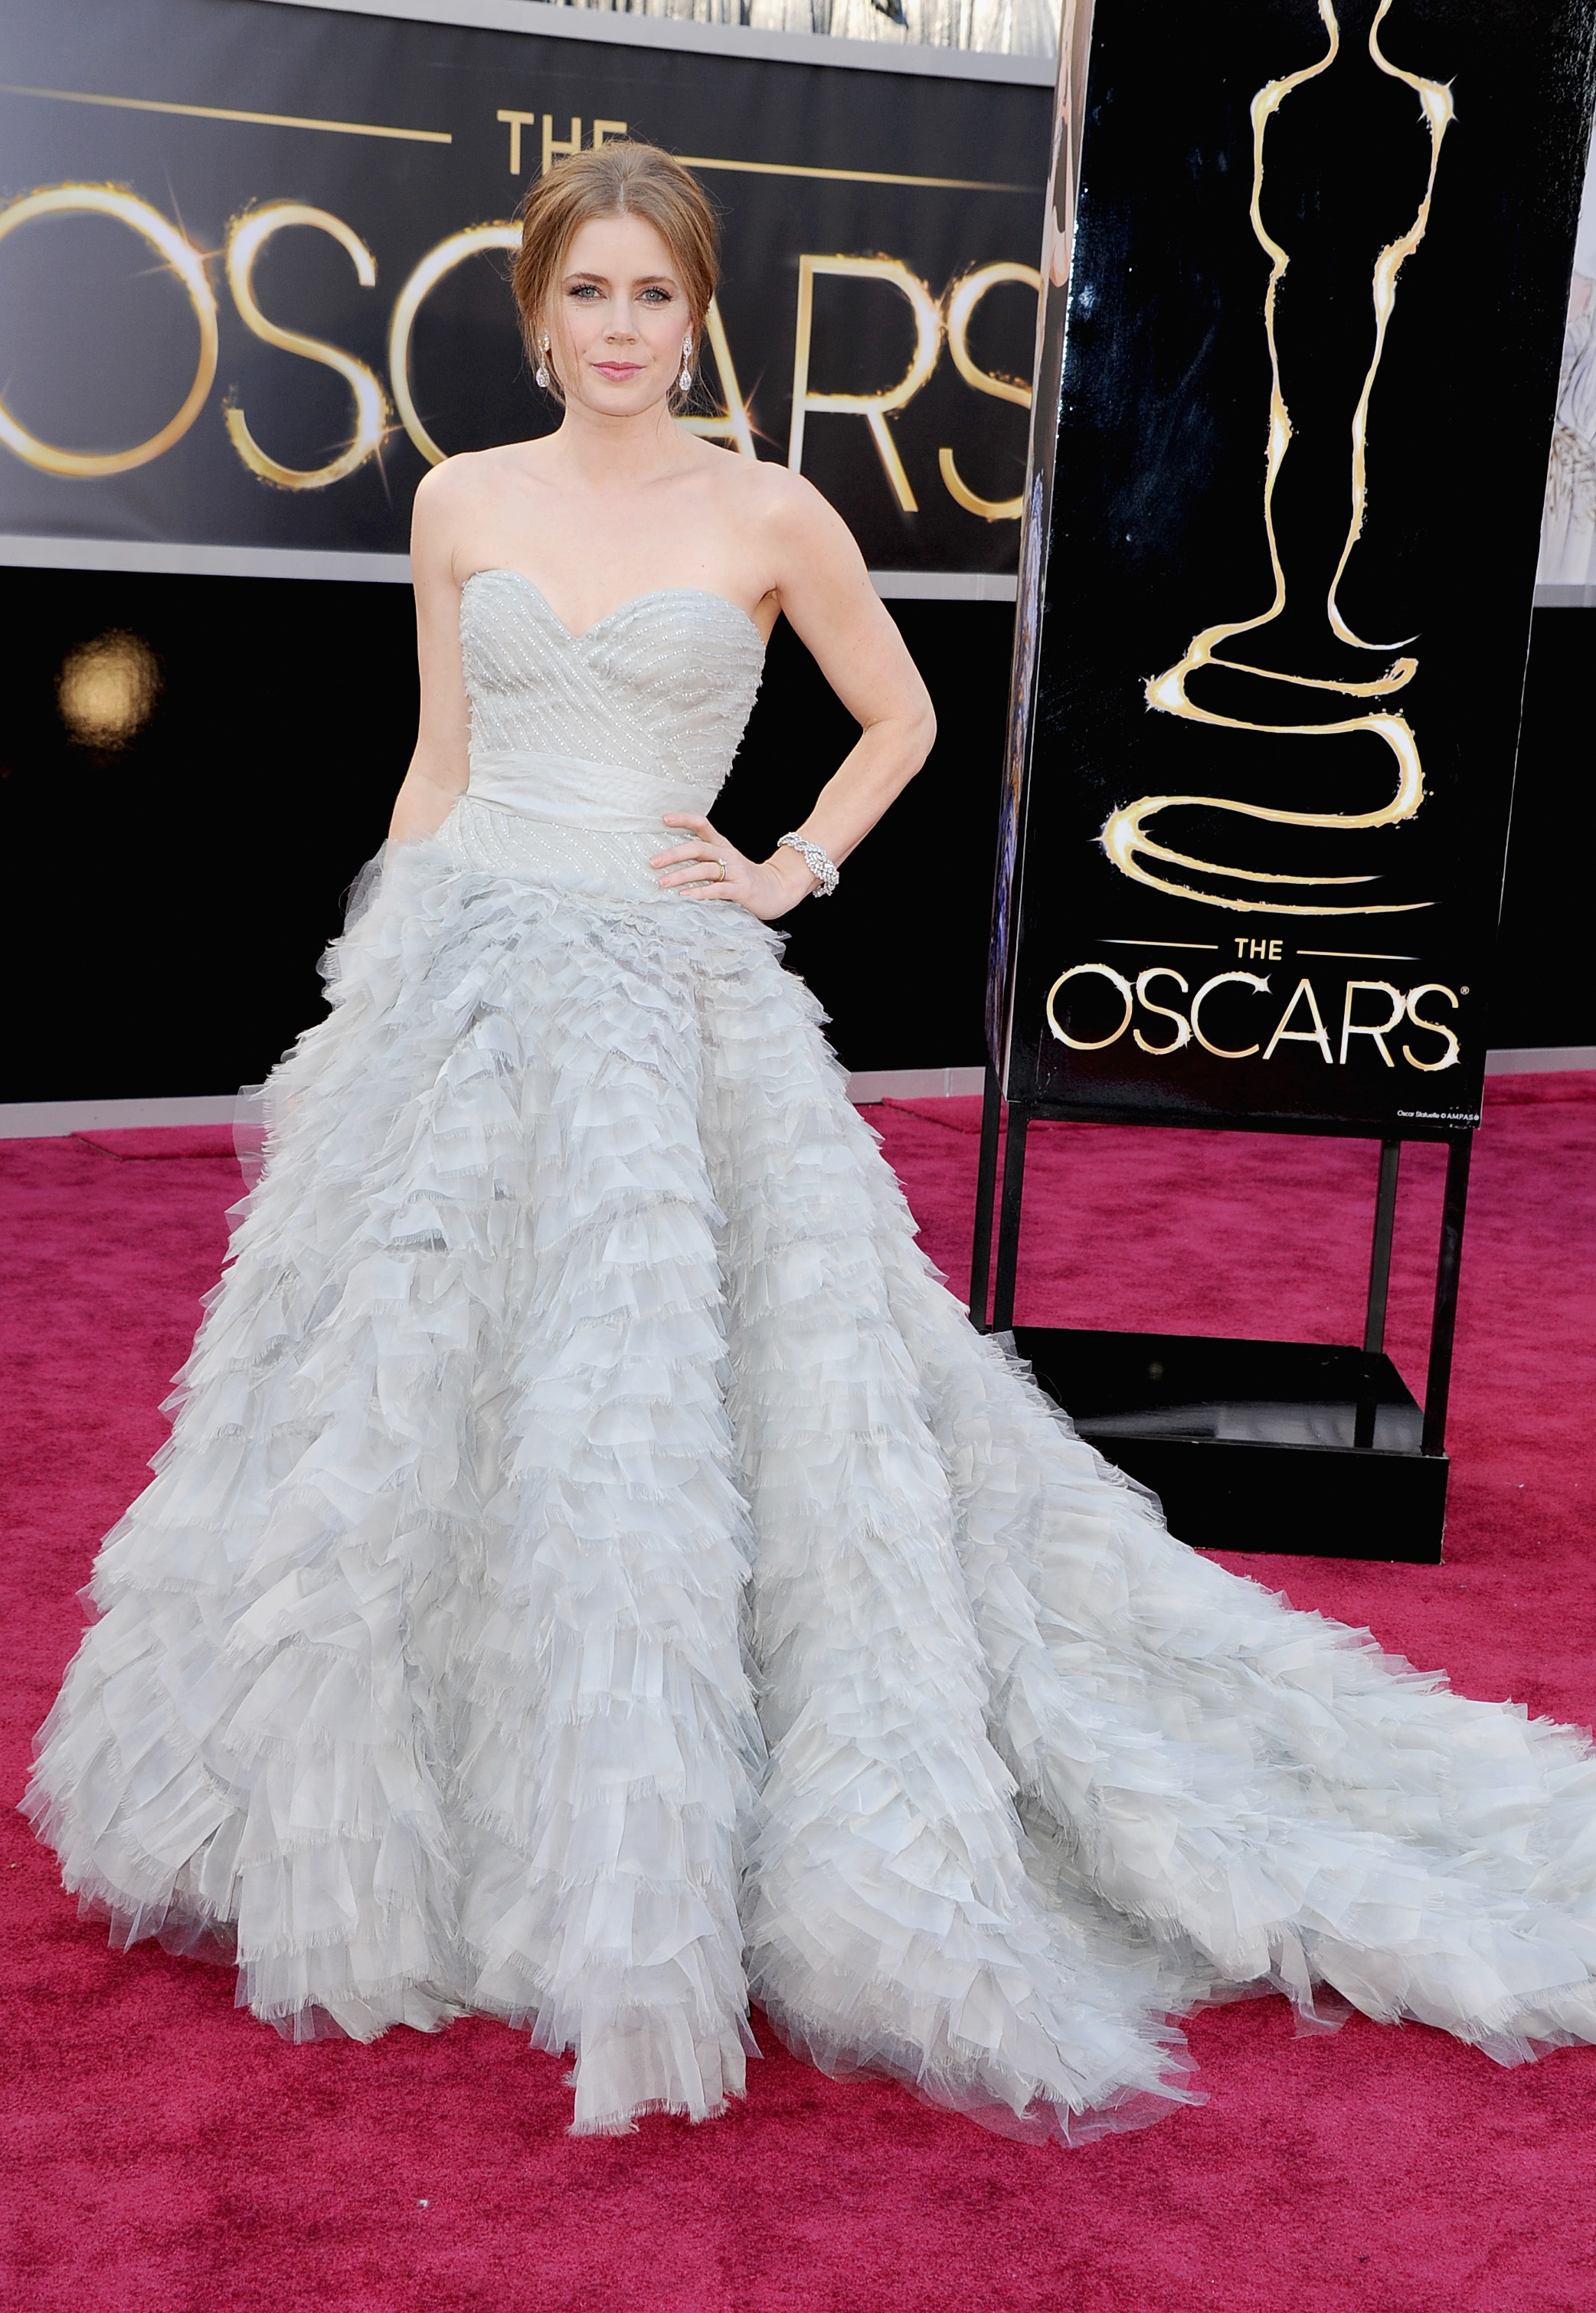 HOLLYWOOD, CA - FEBRUARY 24: Actress Amy Adams arrives at the Oscars at Hollywood & Highland Center on February 24, 2013 in Hollywood, California. (Photo by Steve Granitz/WireImage)